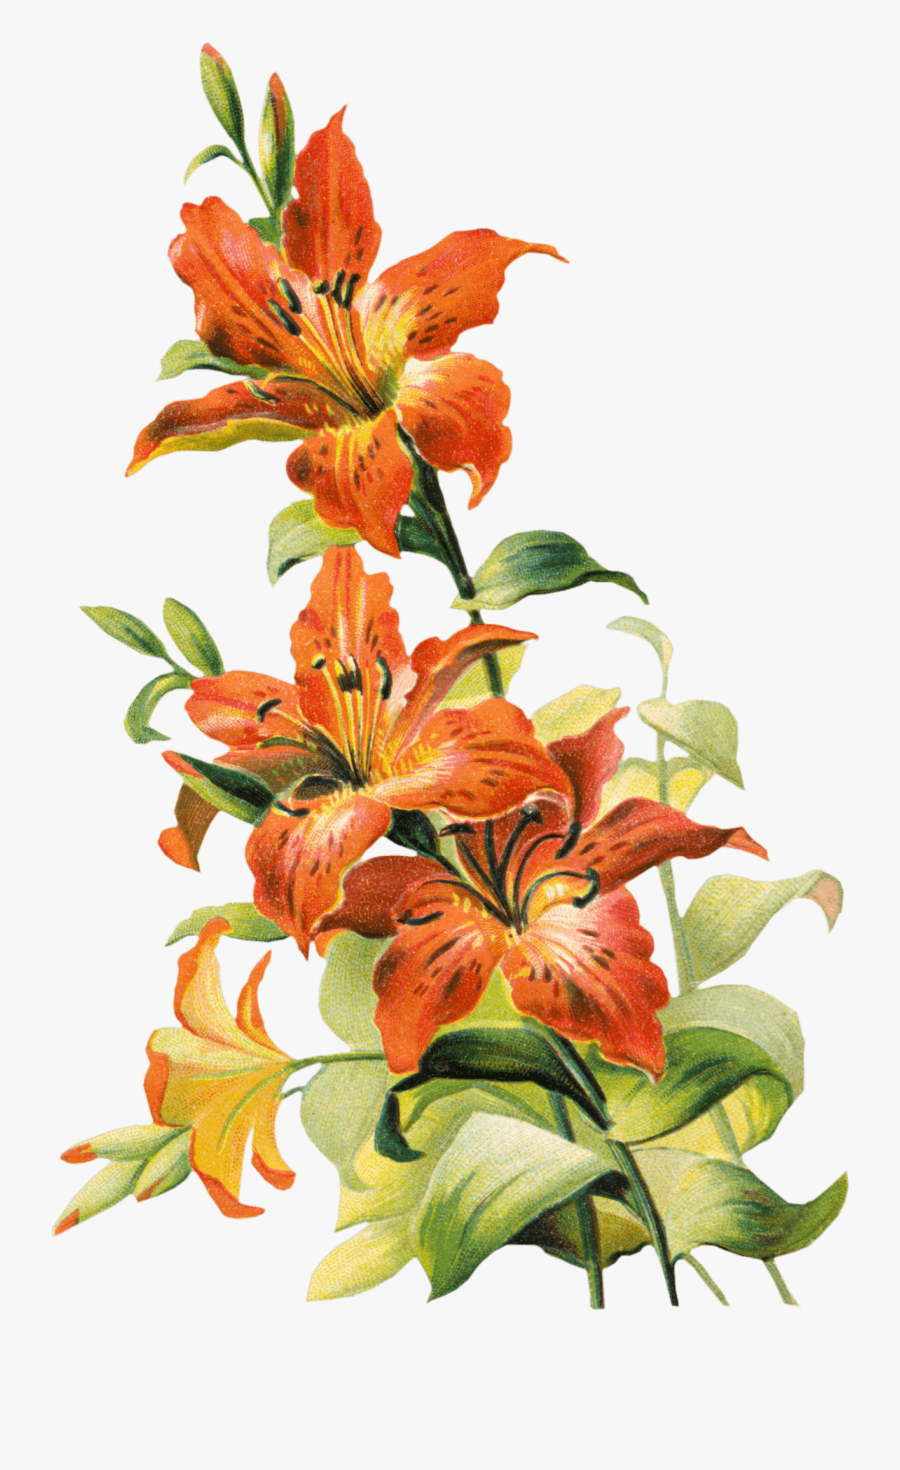 Tiger Lily Clipart - Tiger Lily Flower Png, Transparent Clipart